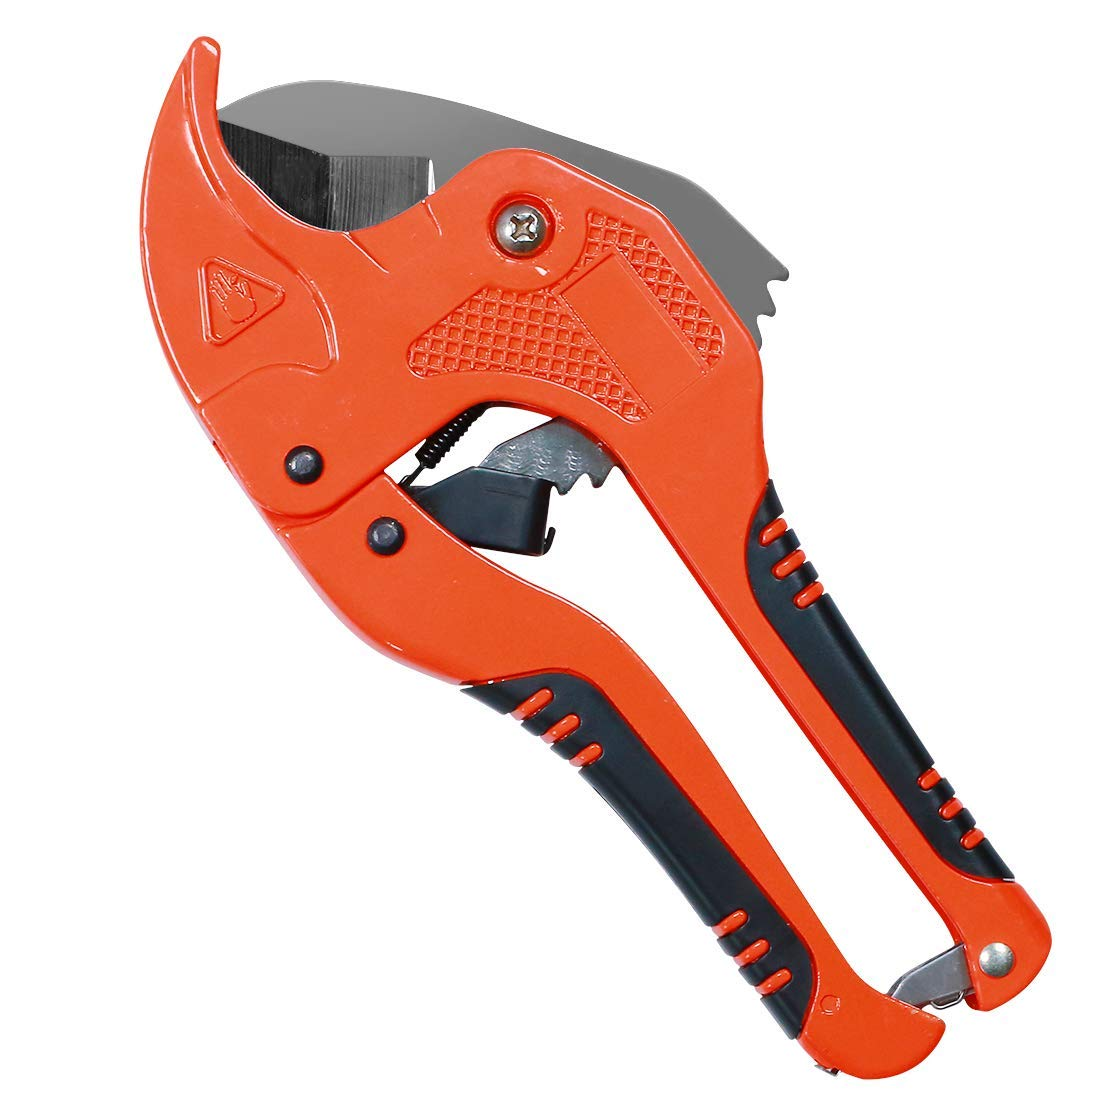 HARVET Ratchet-type PVC Pipe Cutter for Cutting PPR Plastic Hoses and Plumbing Pipes Up to 1-5/8'' Inches, Ideal for Home Working and Plumbers by HARVET